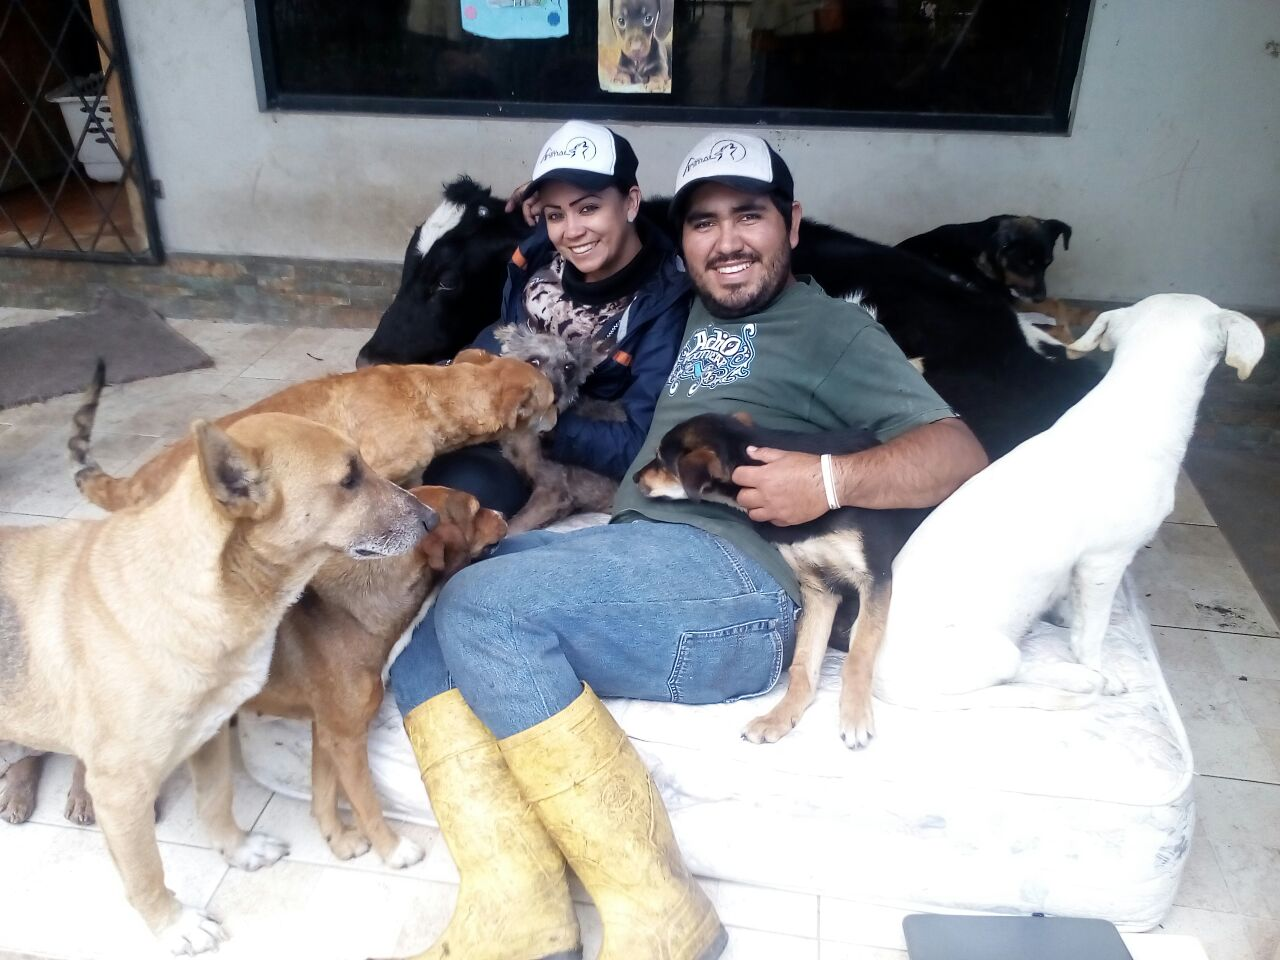 February 2018 - Two staff members from Accion Animal Ecuador cuddling this unusual combination of rescues after a long morning of work.